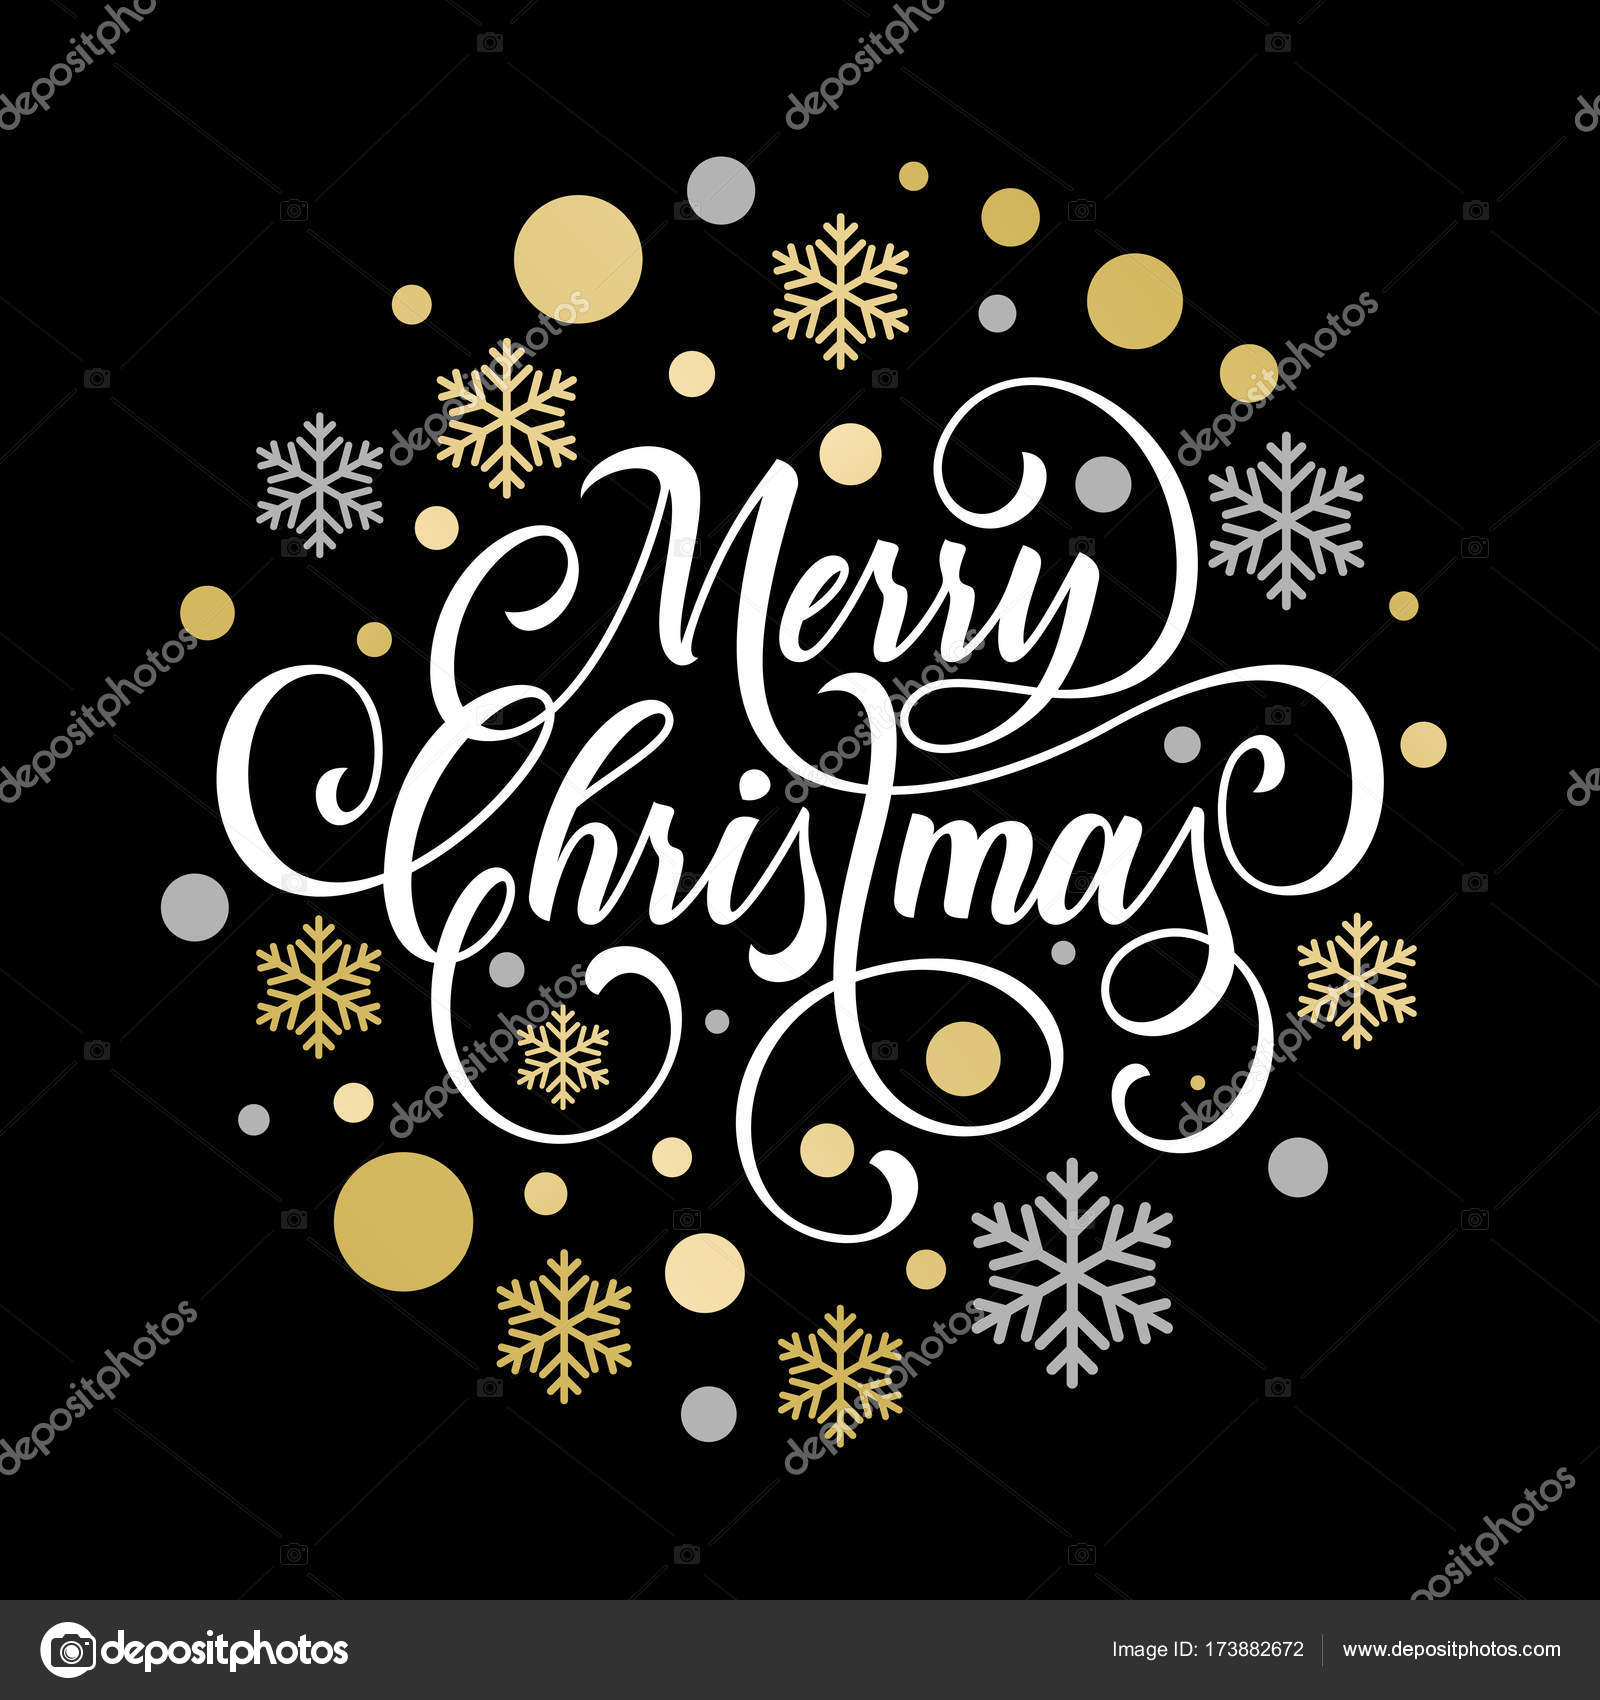 merry christmas greeting card of golden snowflake and gold glittering star pattern on premium black background vector christmas or new year